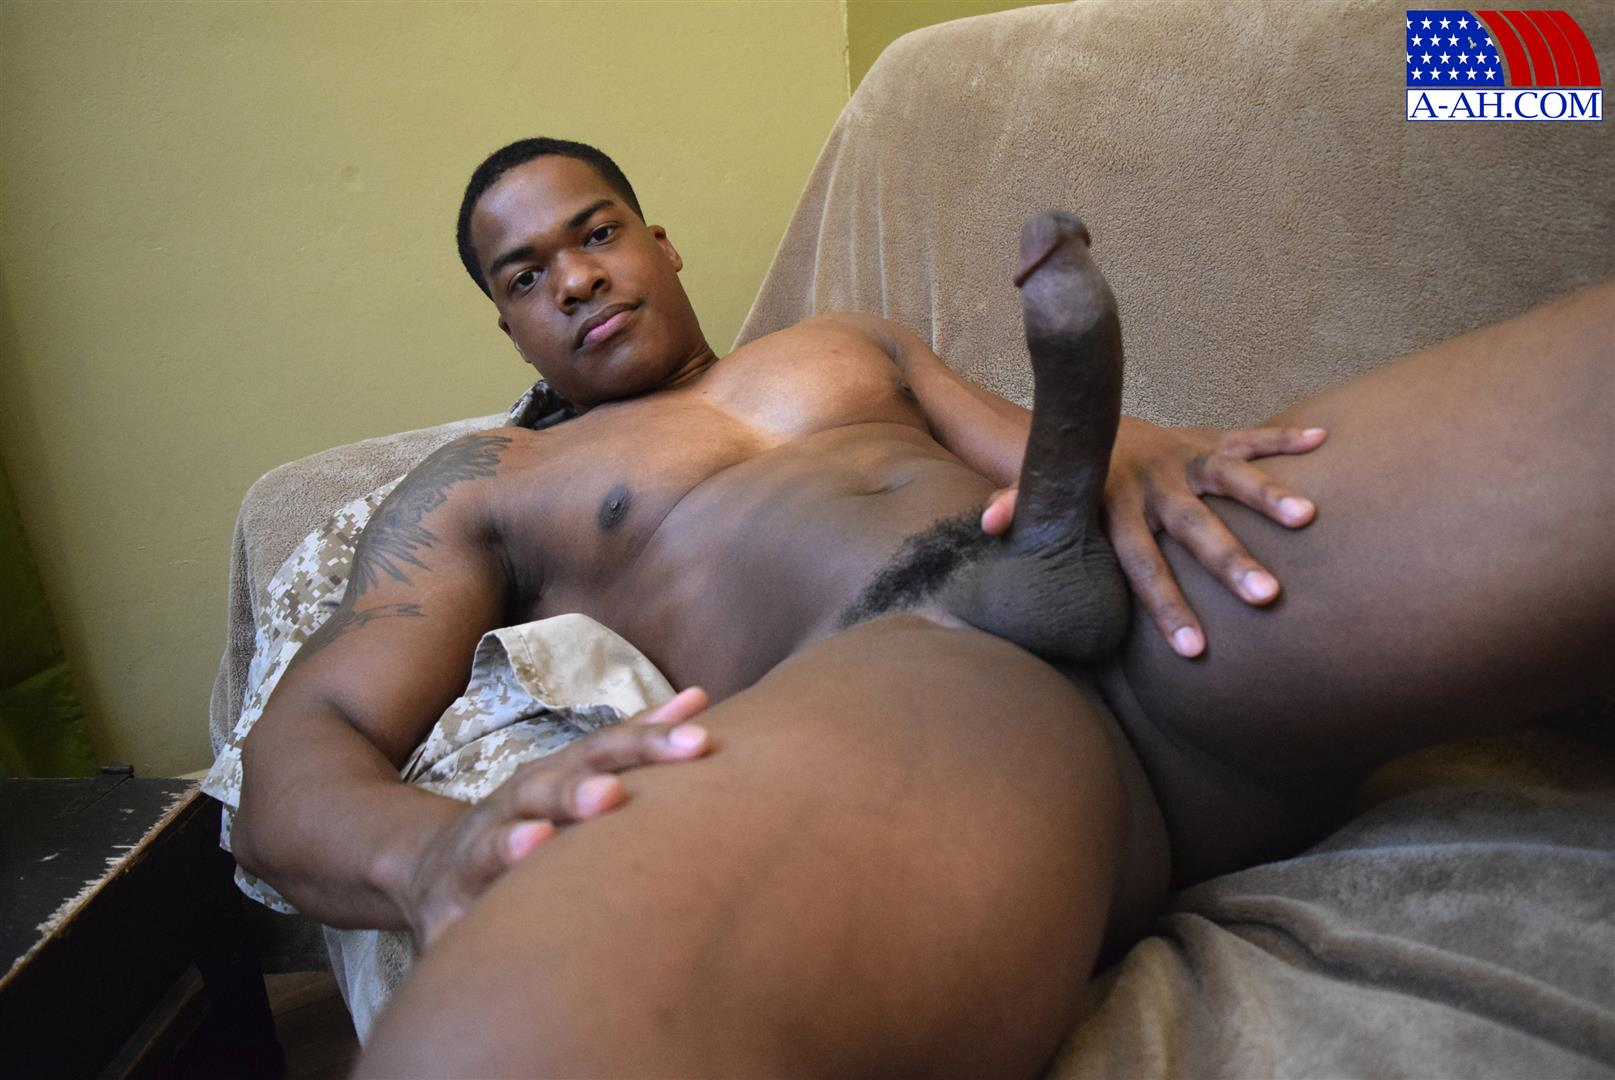 Authoritative dick gallery photo big blacks means